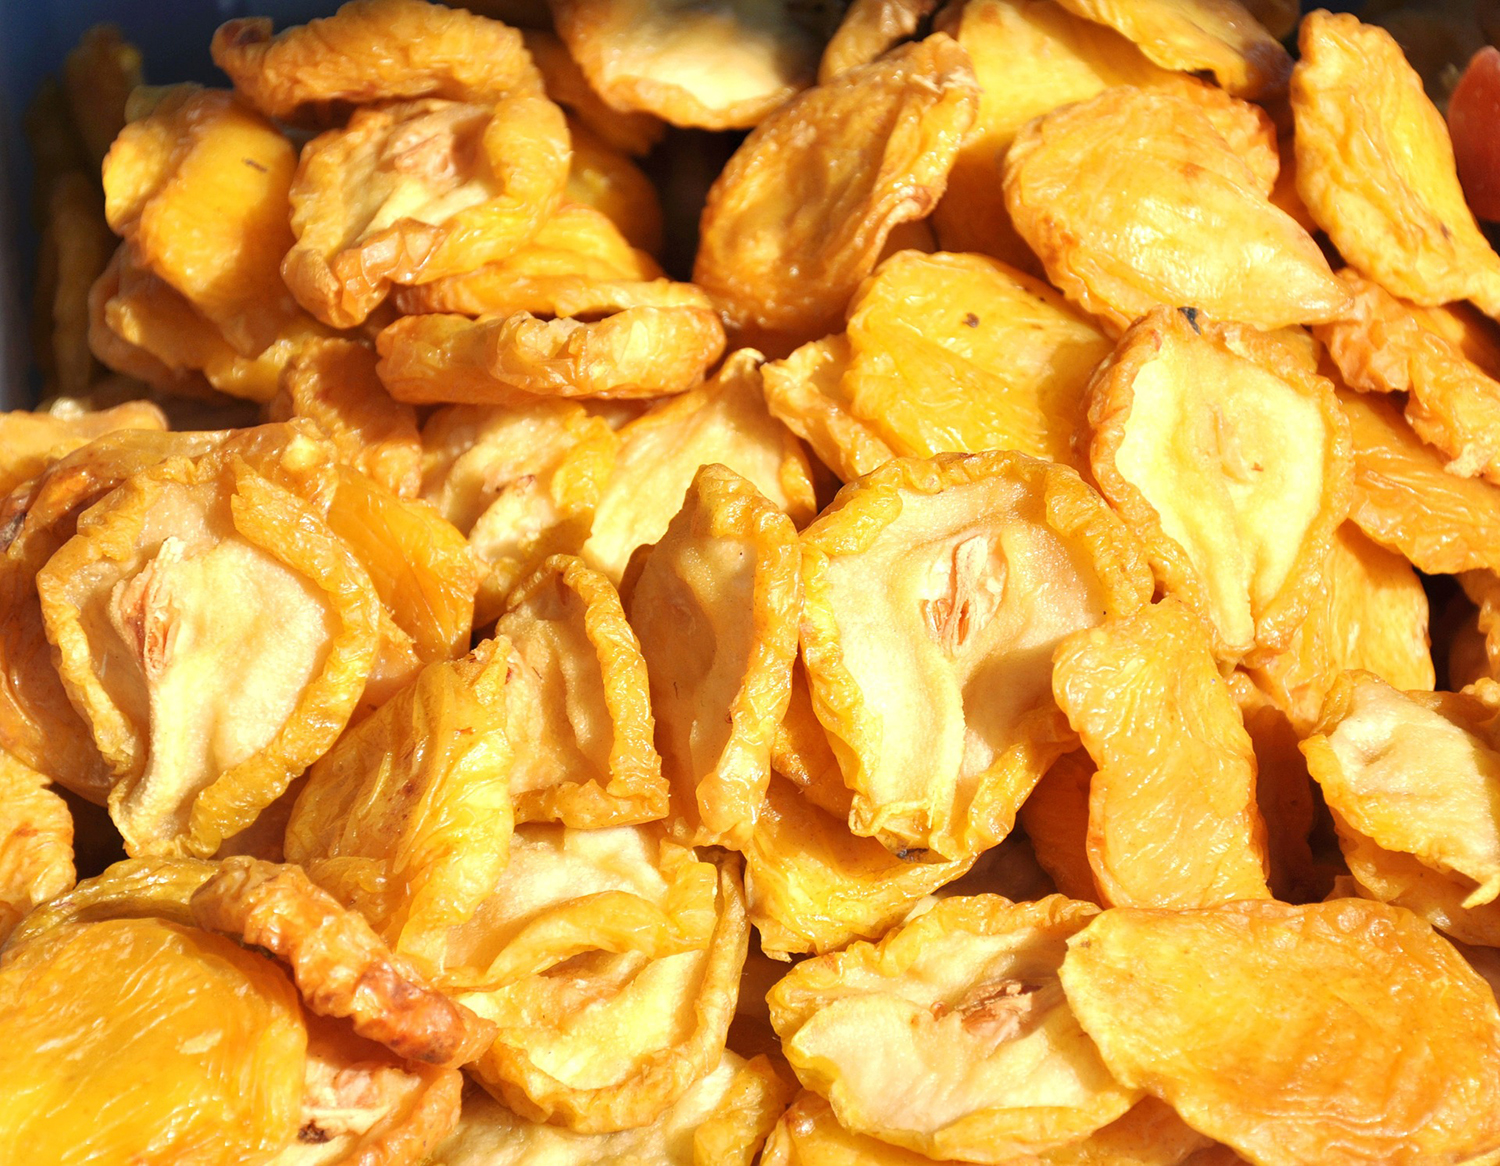 Dried fruit makes a great snack and is a fun way to preserve apples and other fruits.